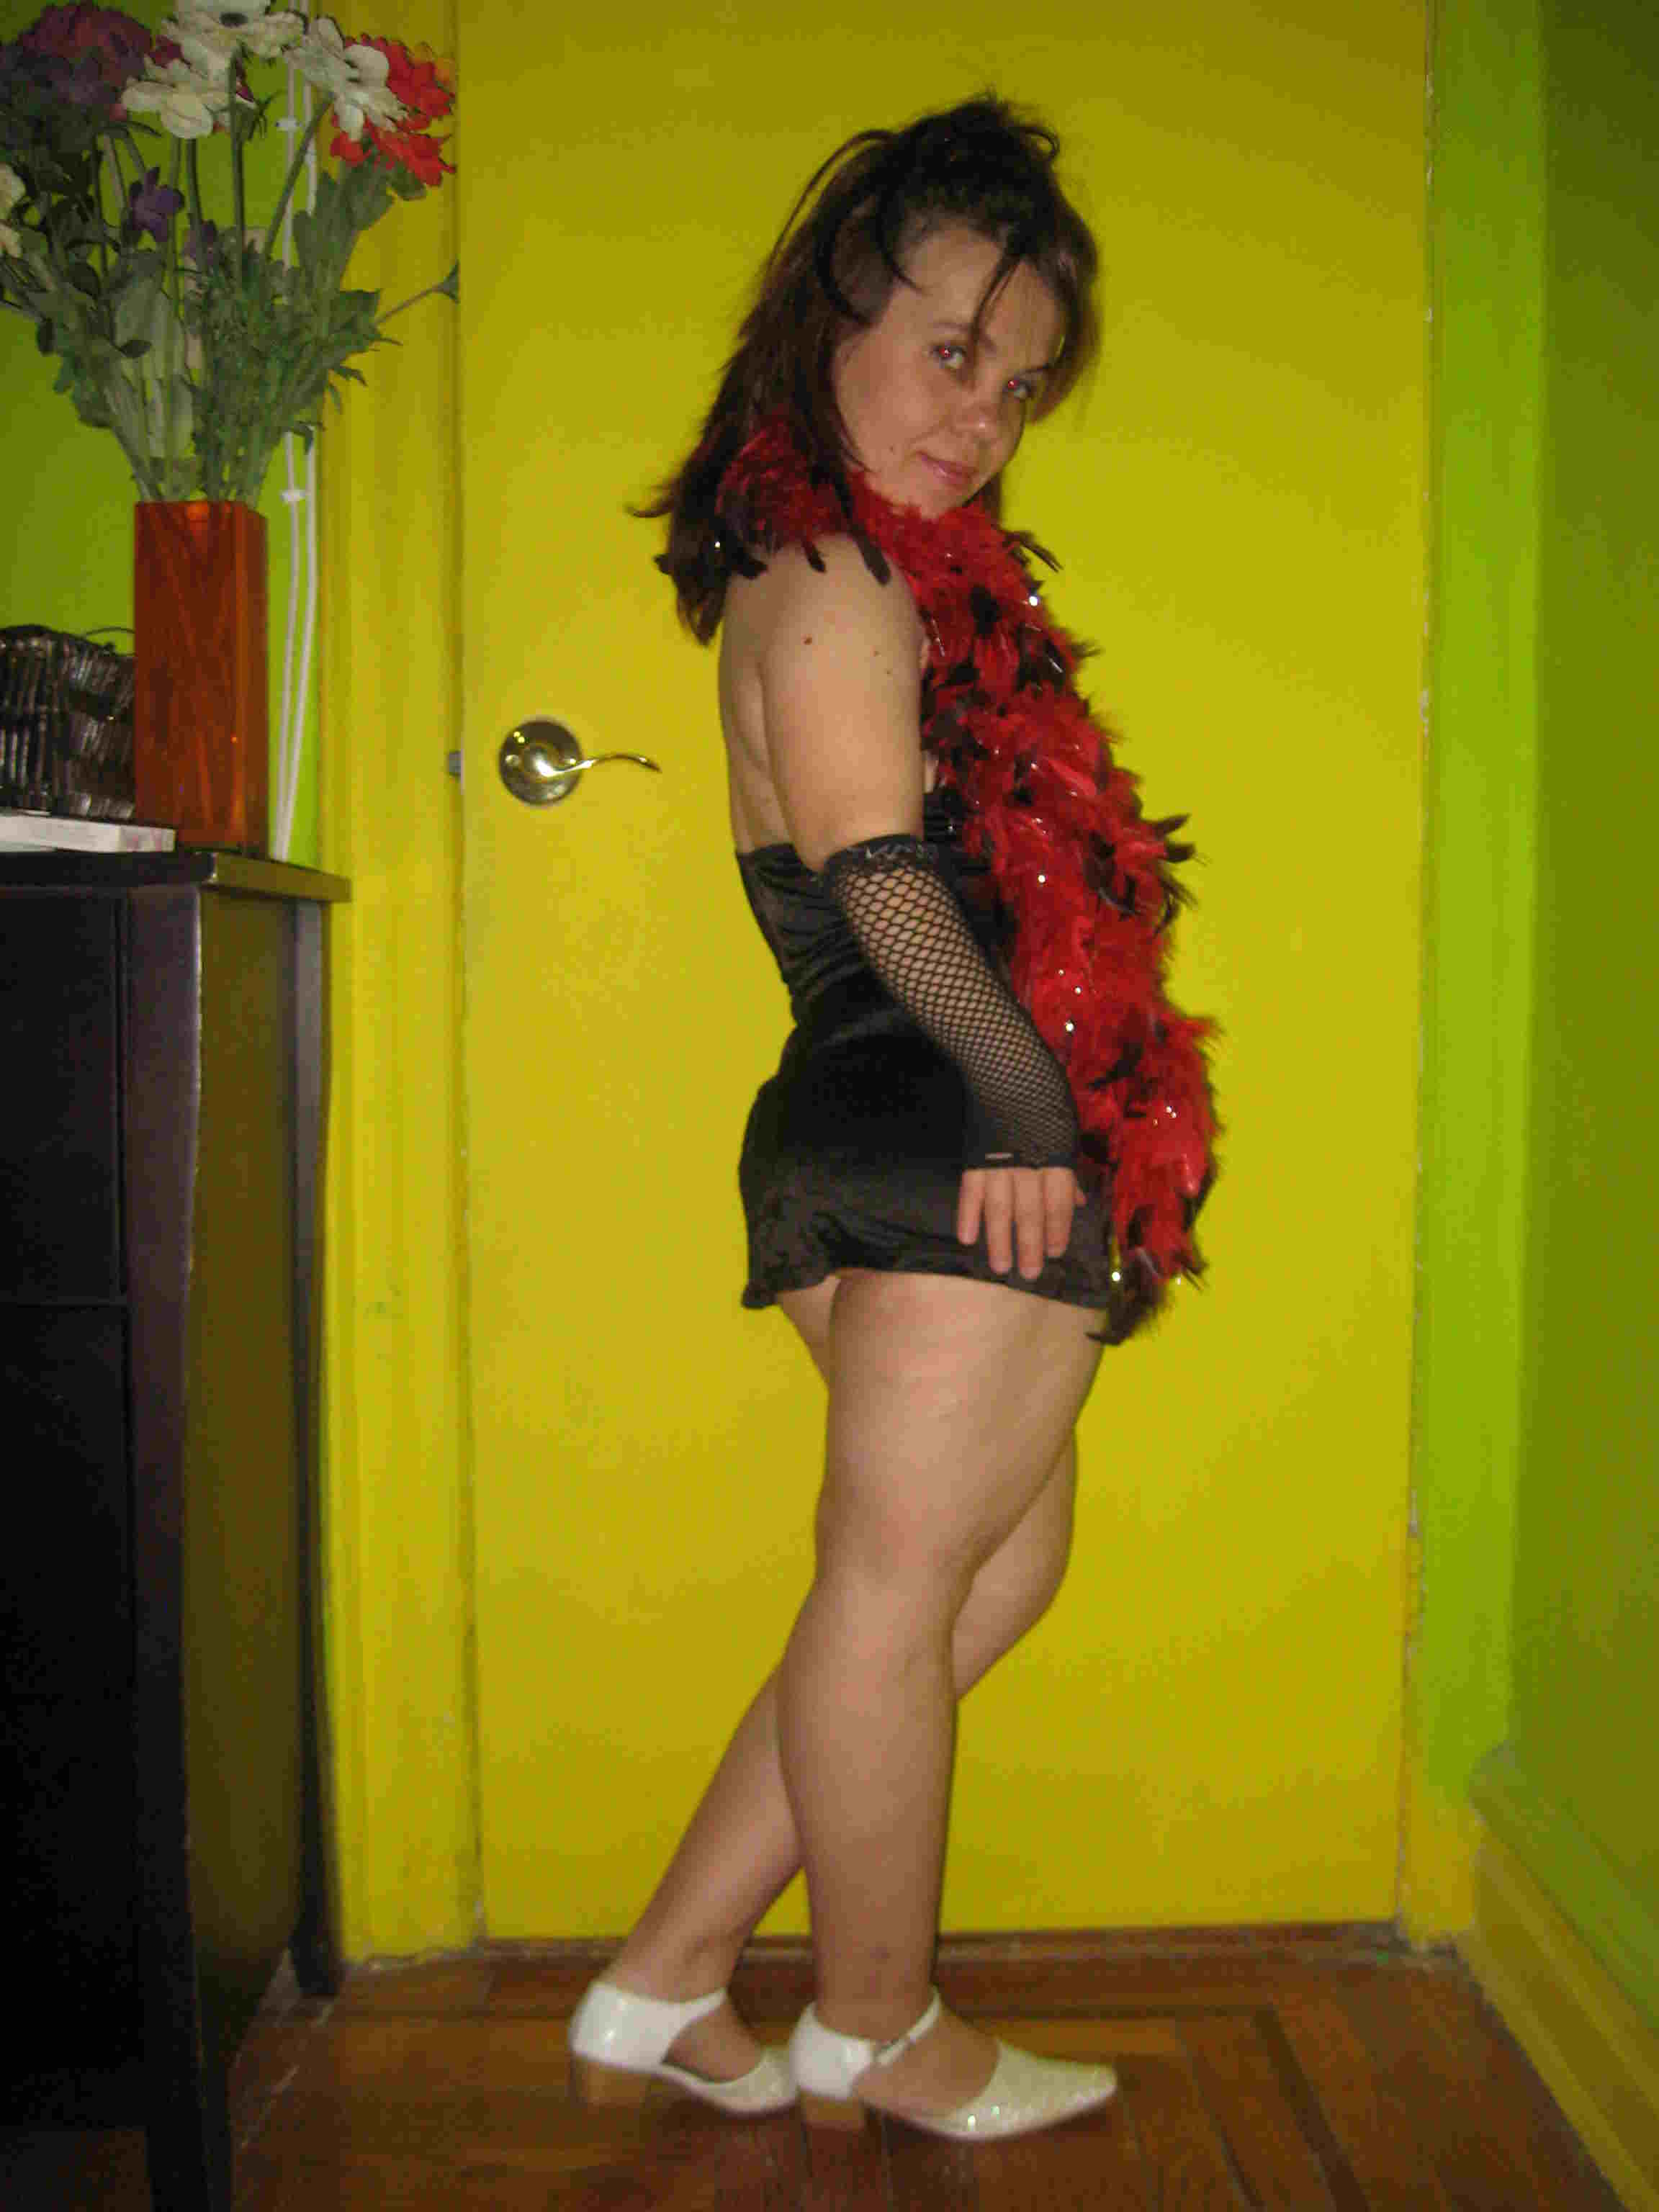 Something is. Female midget stripper